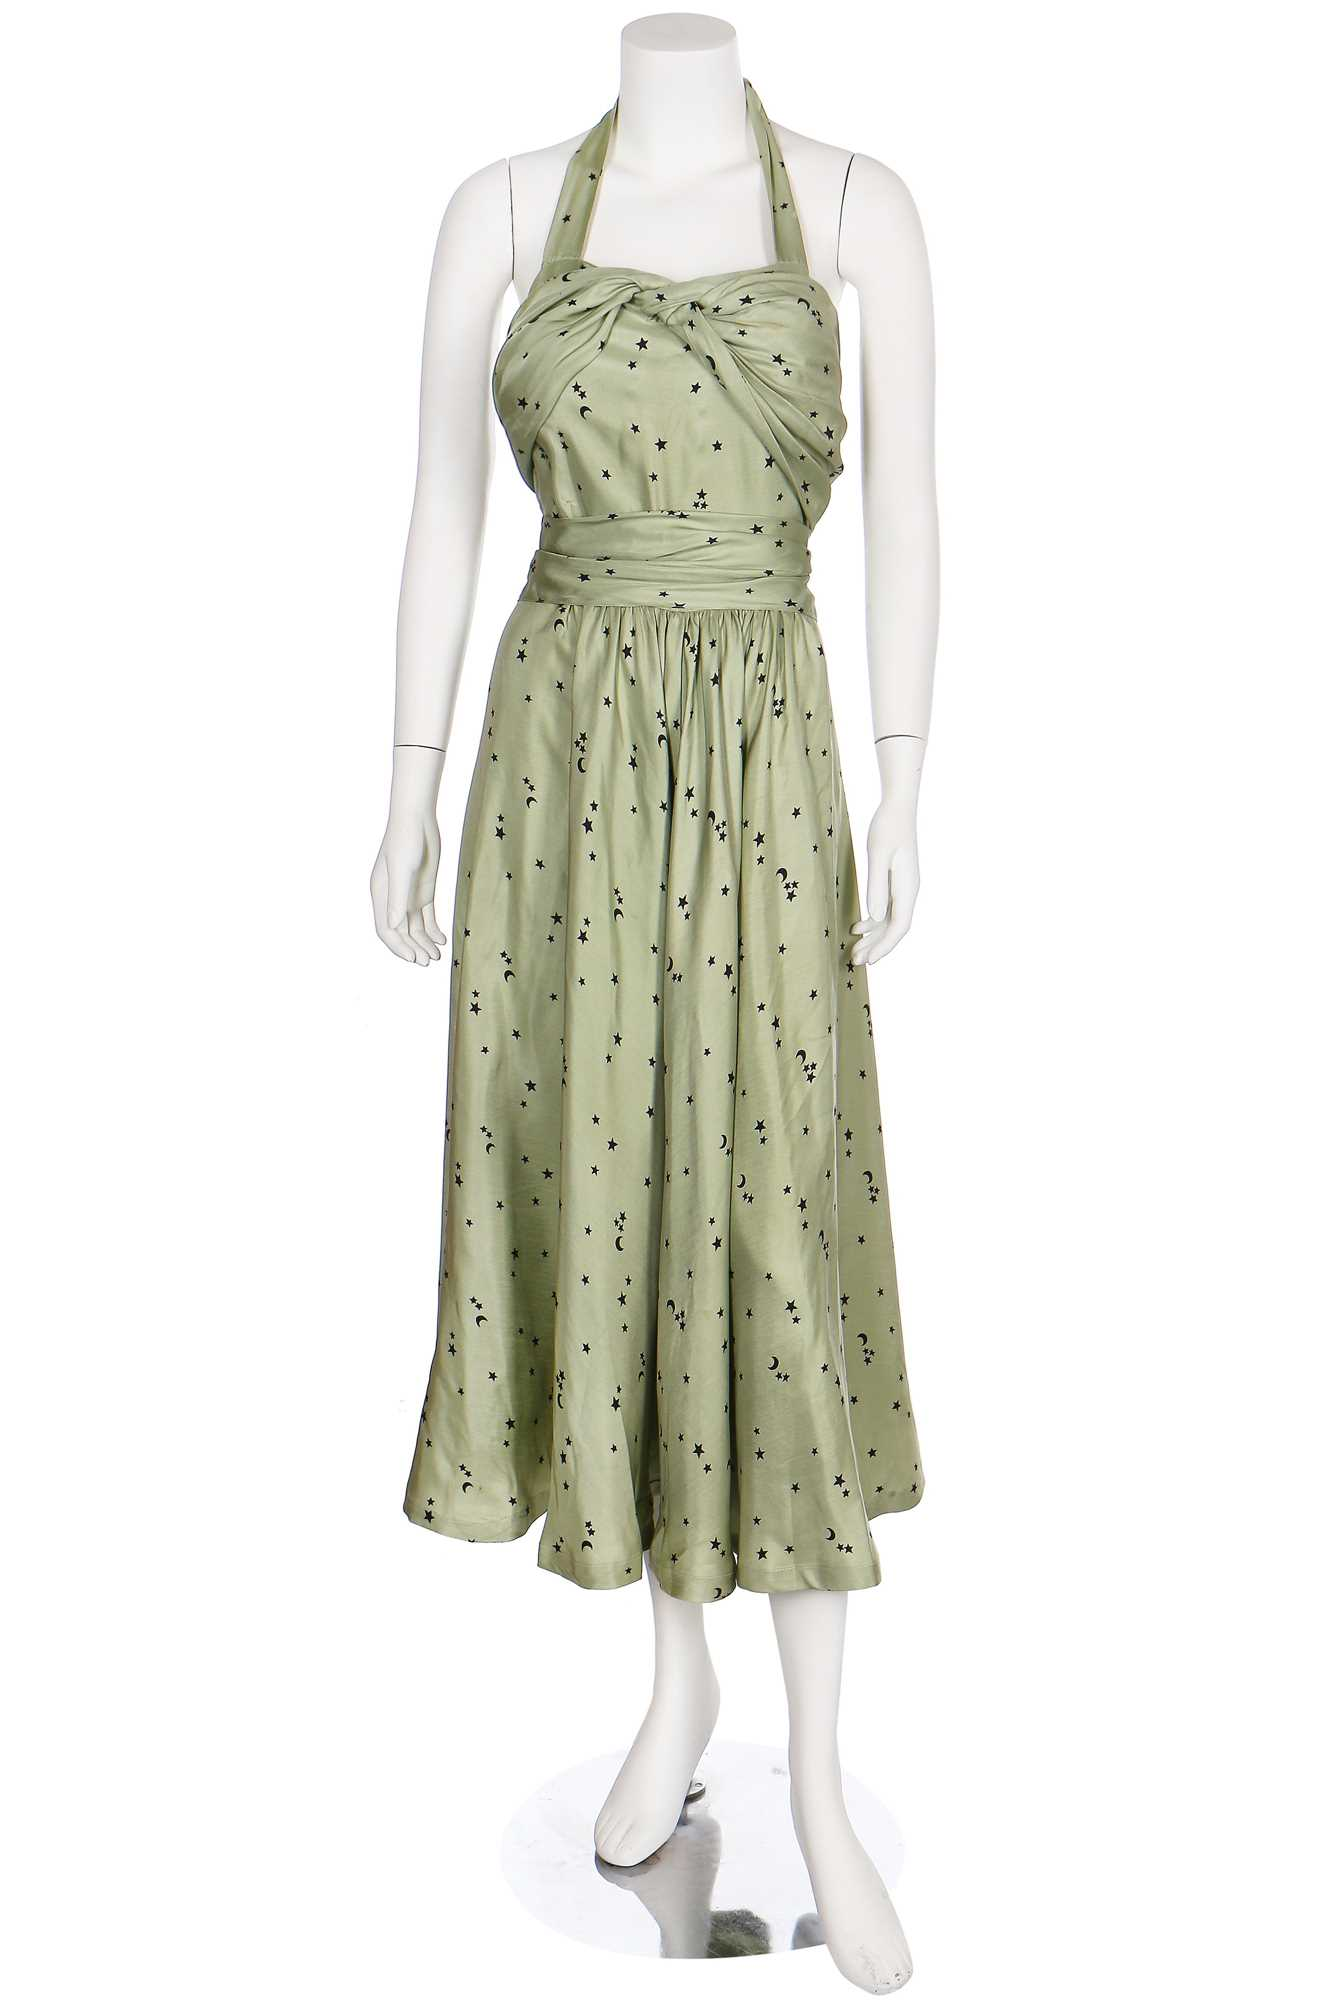 Lot 26-A Violet Tatum crescent-moon-and-stars printed green silk gown, late 1930s